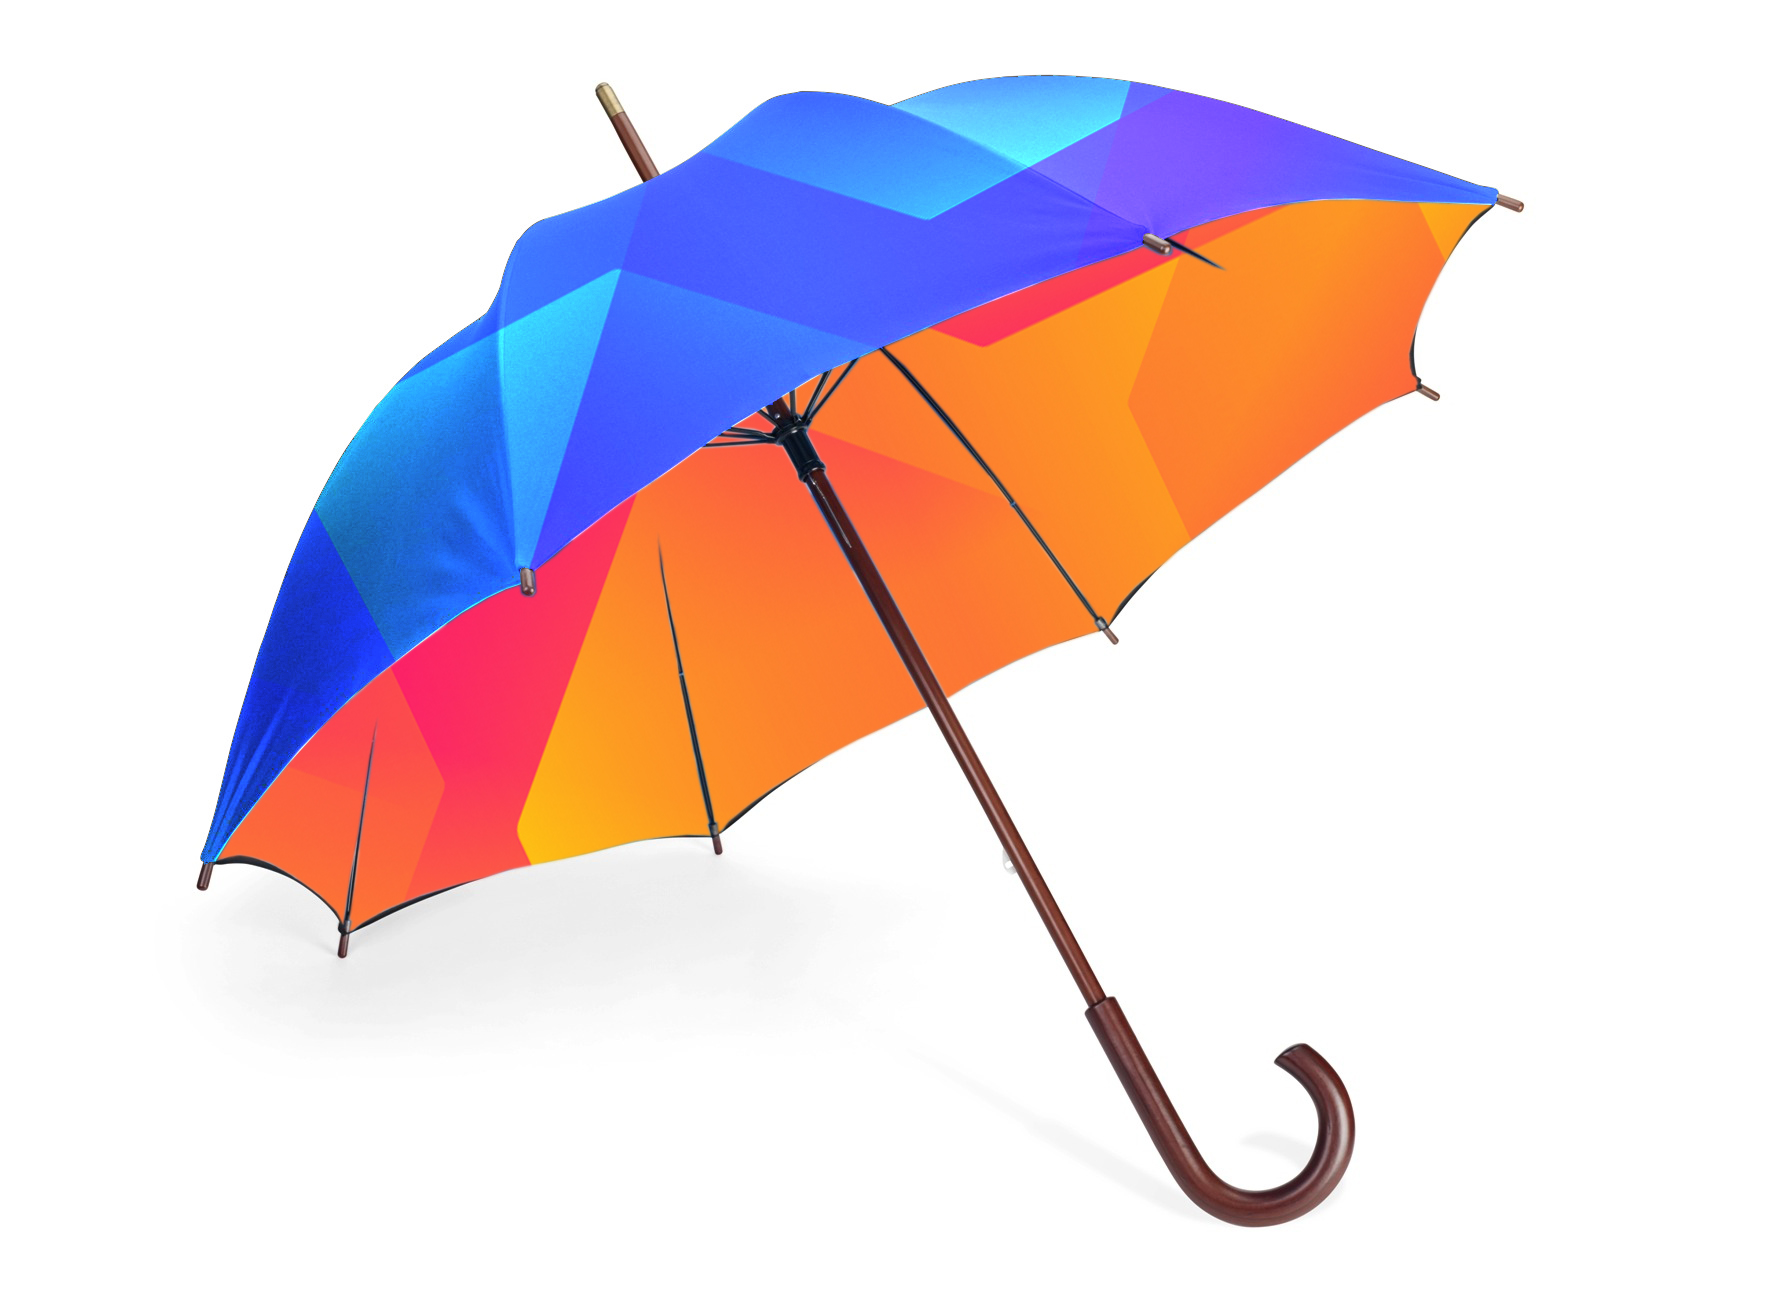 Chromatic_TPICAP_Umbrella copy.jpg